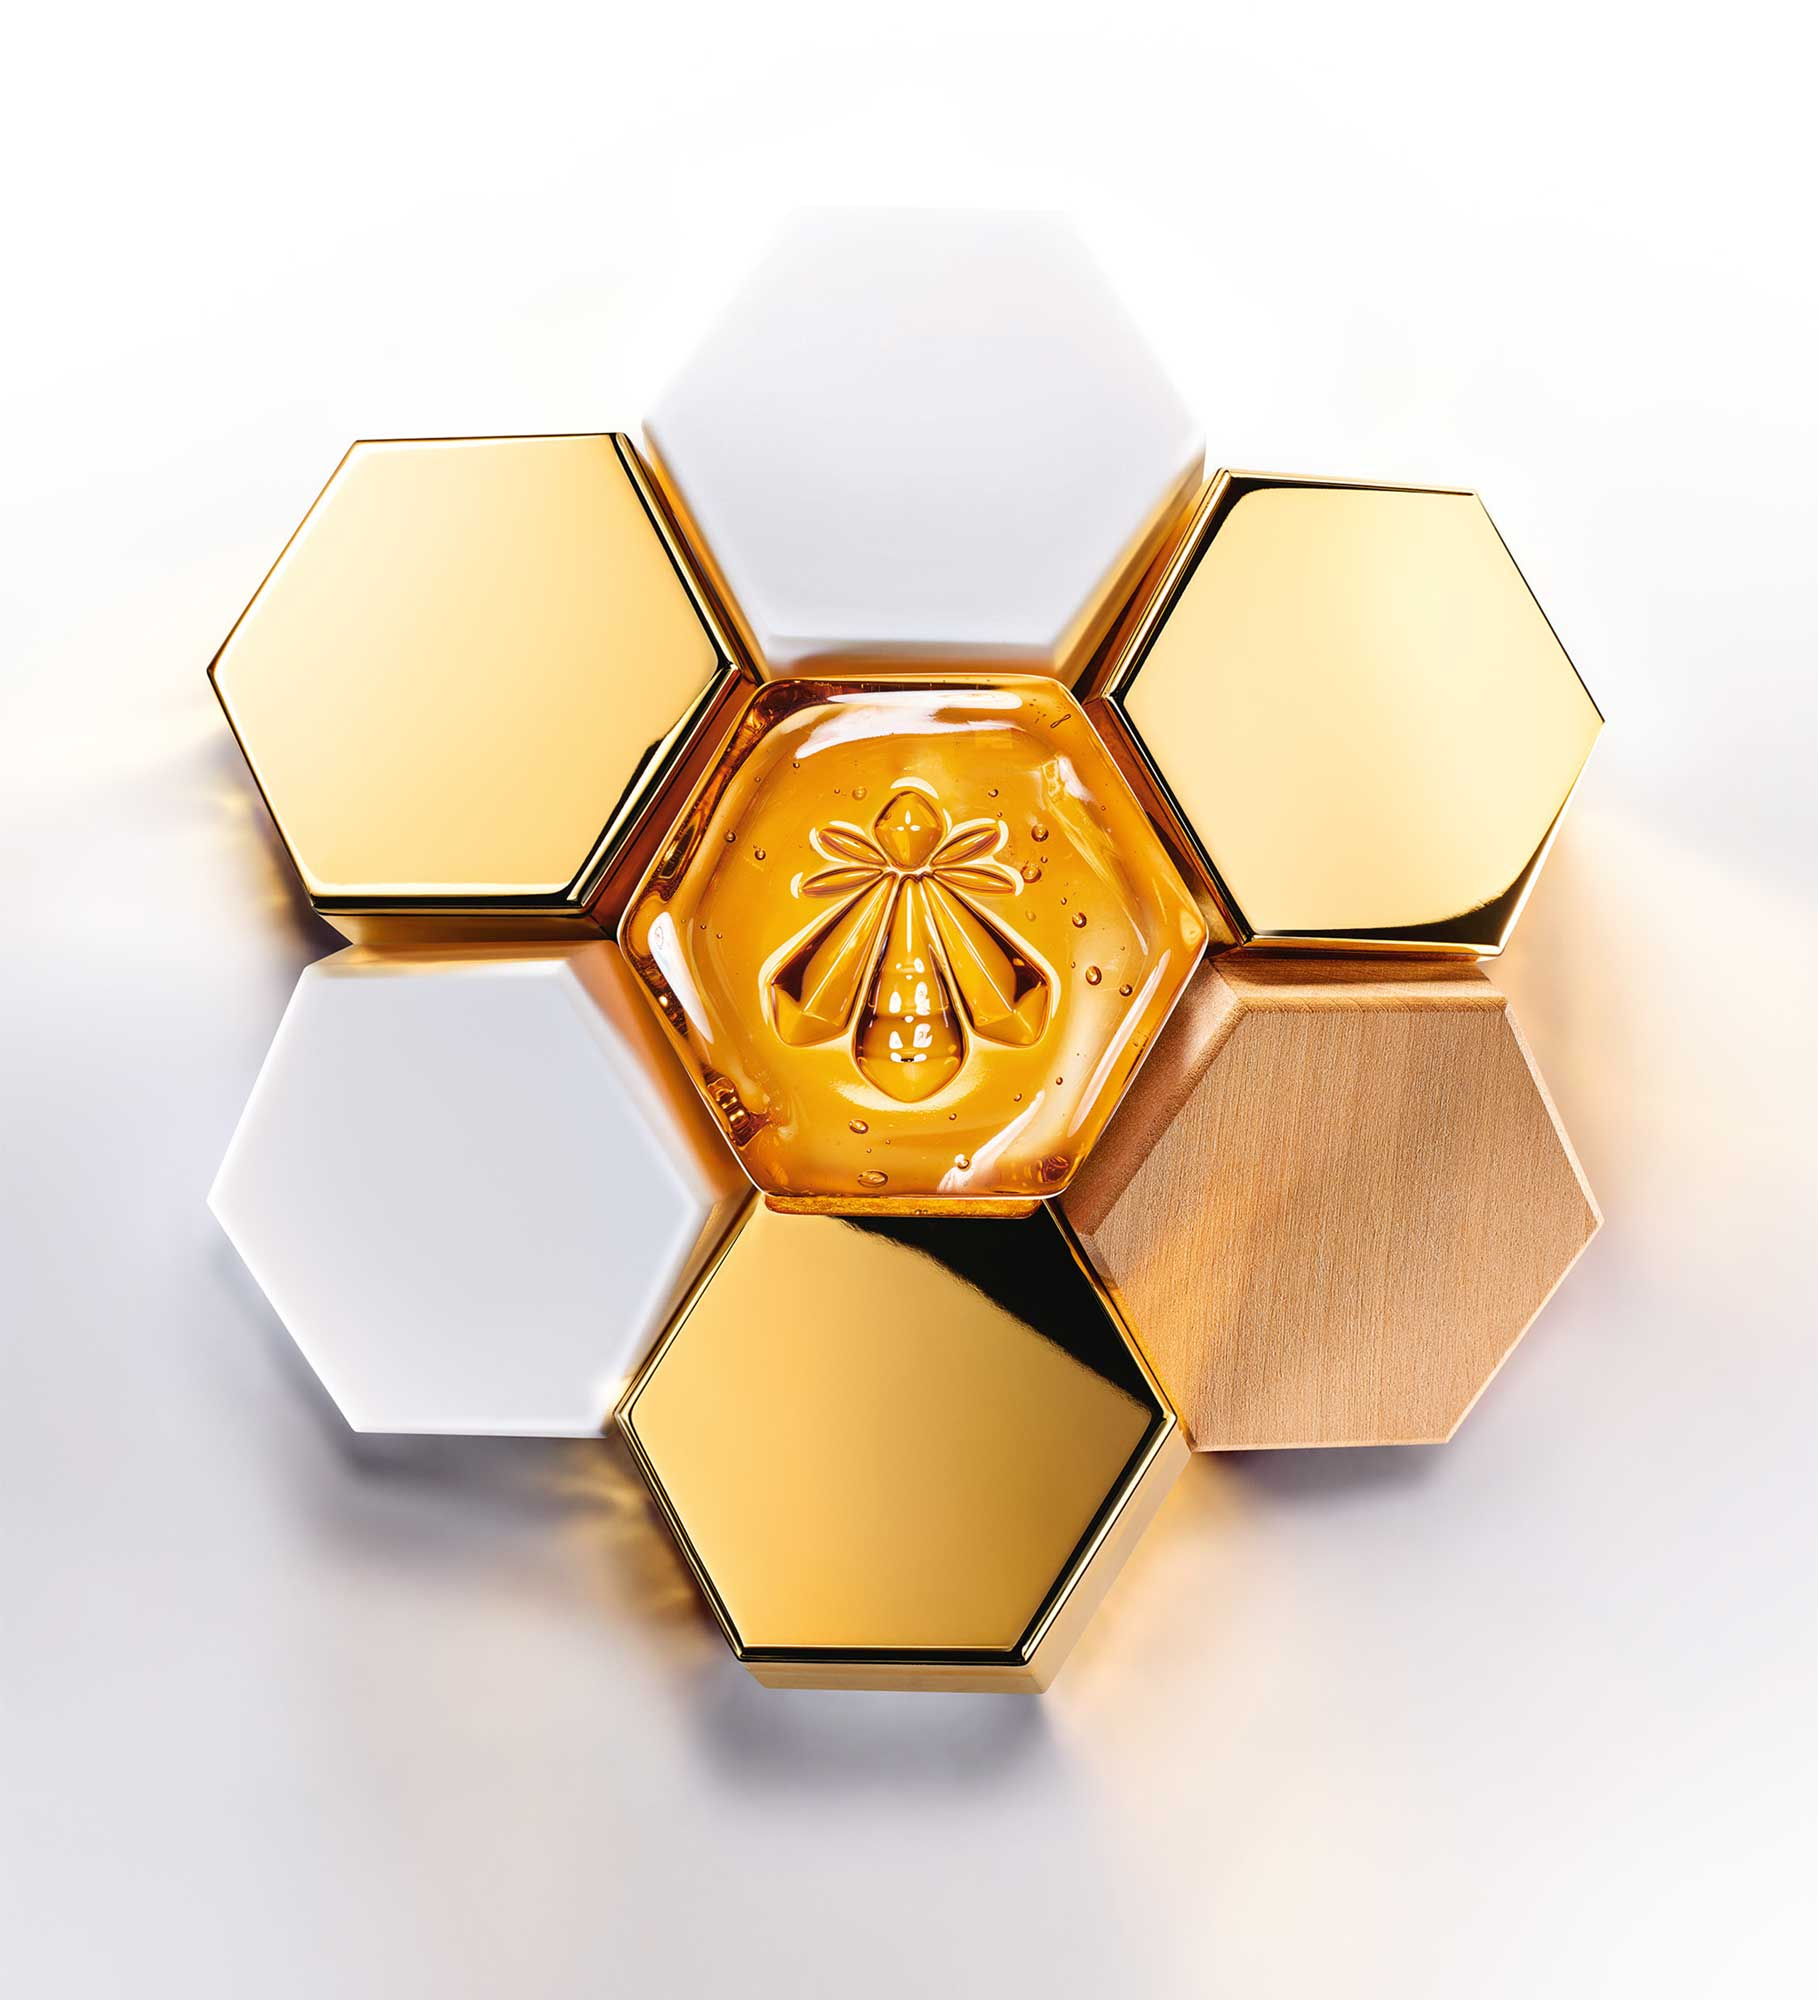 Guerlain Abeille Royale Eye Cream | News | BeautyAlmanac